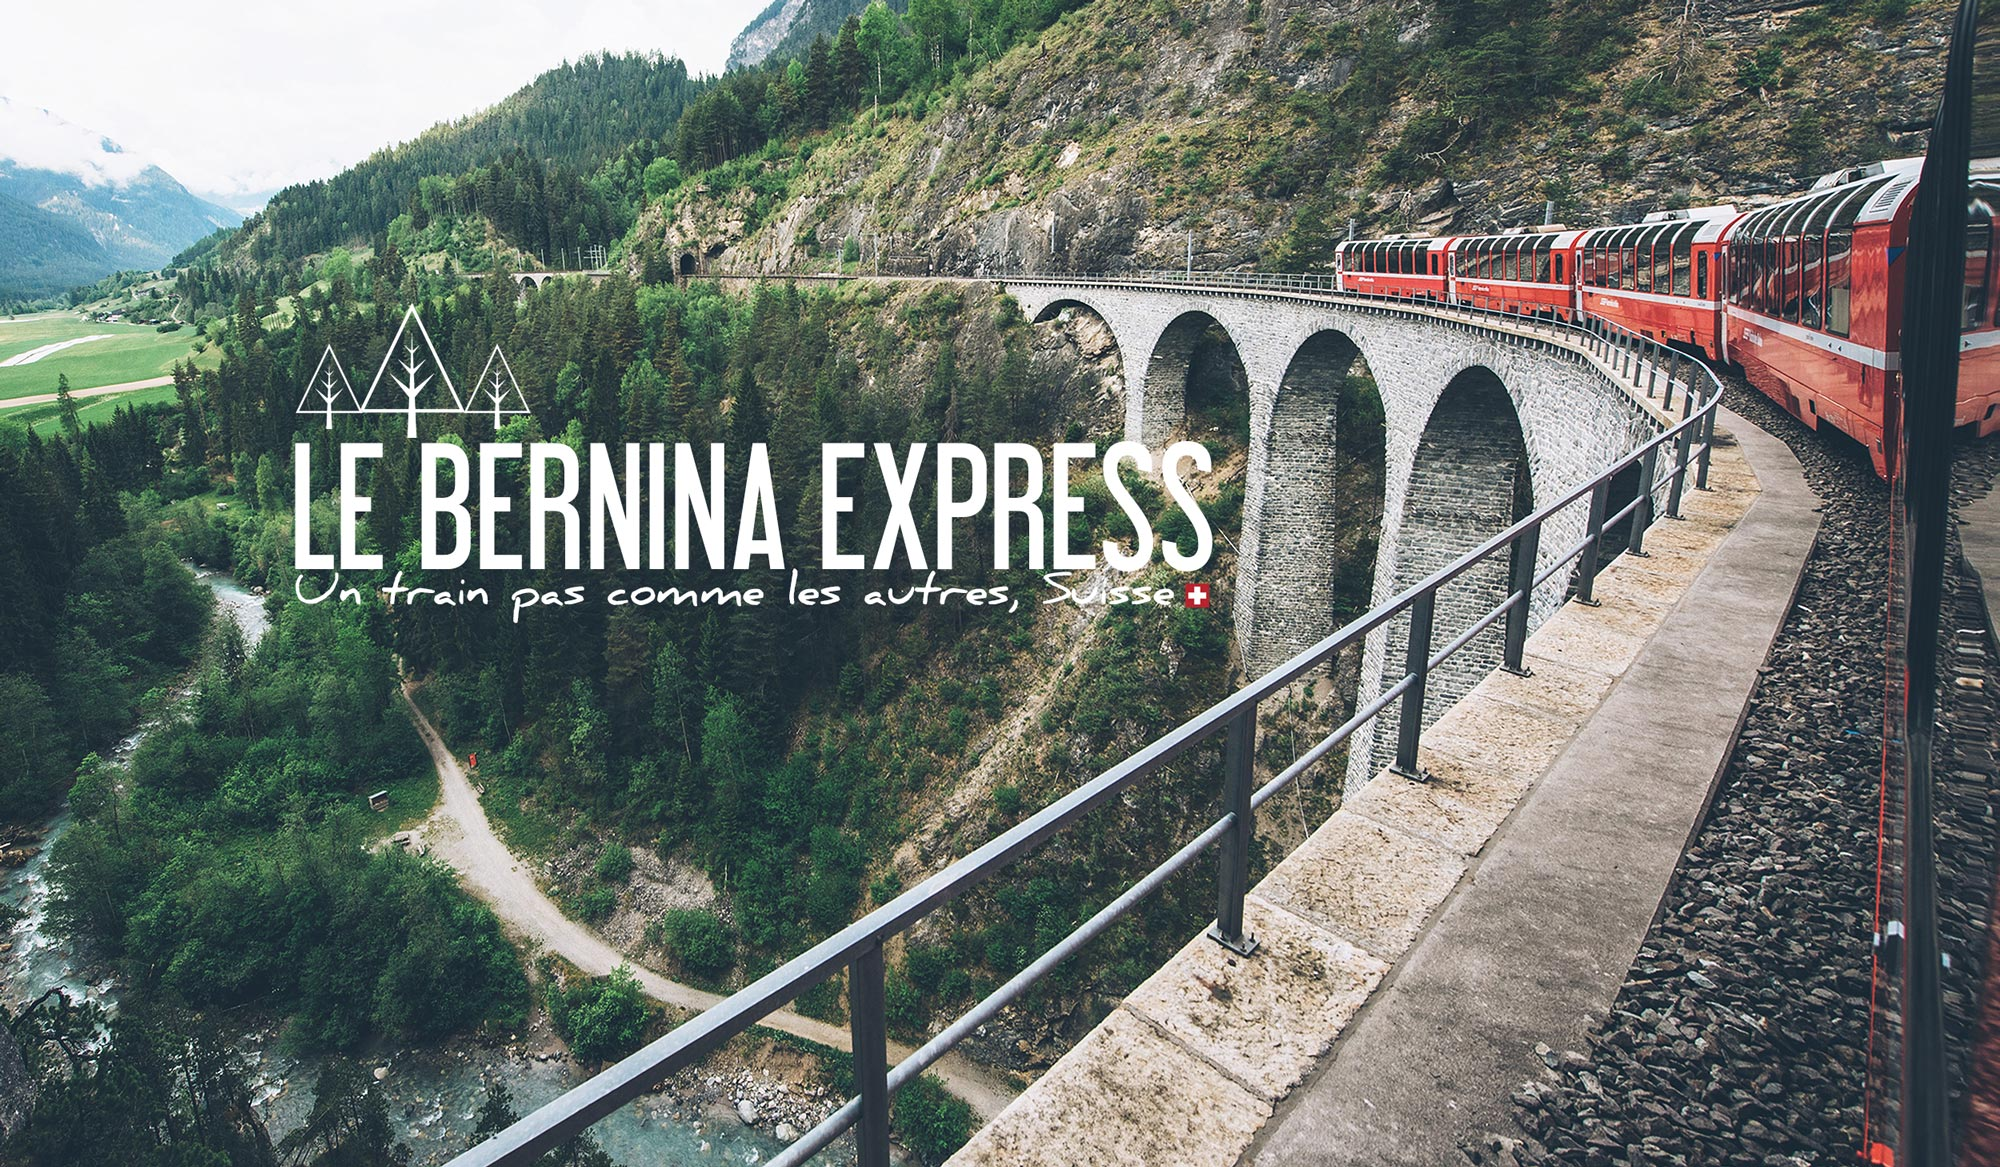 Bernina Express, train panoramique, Suisse